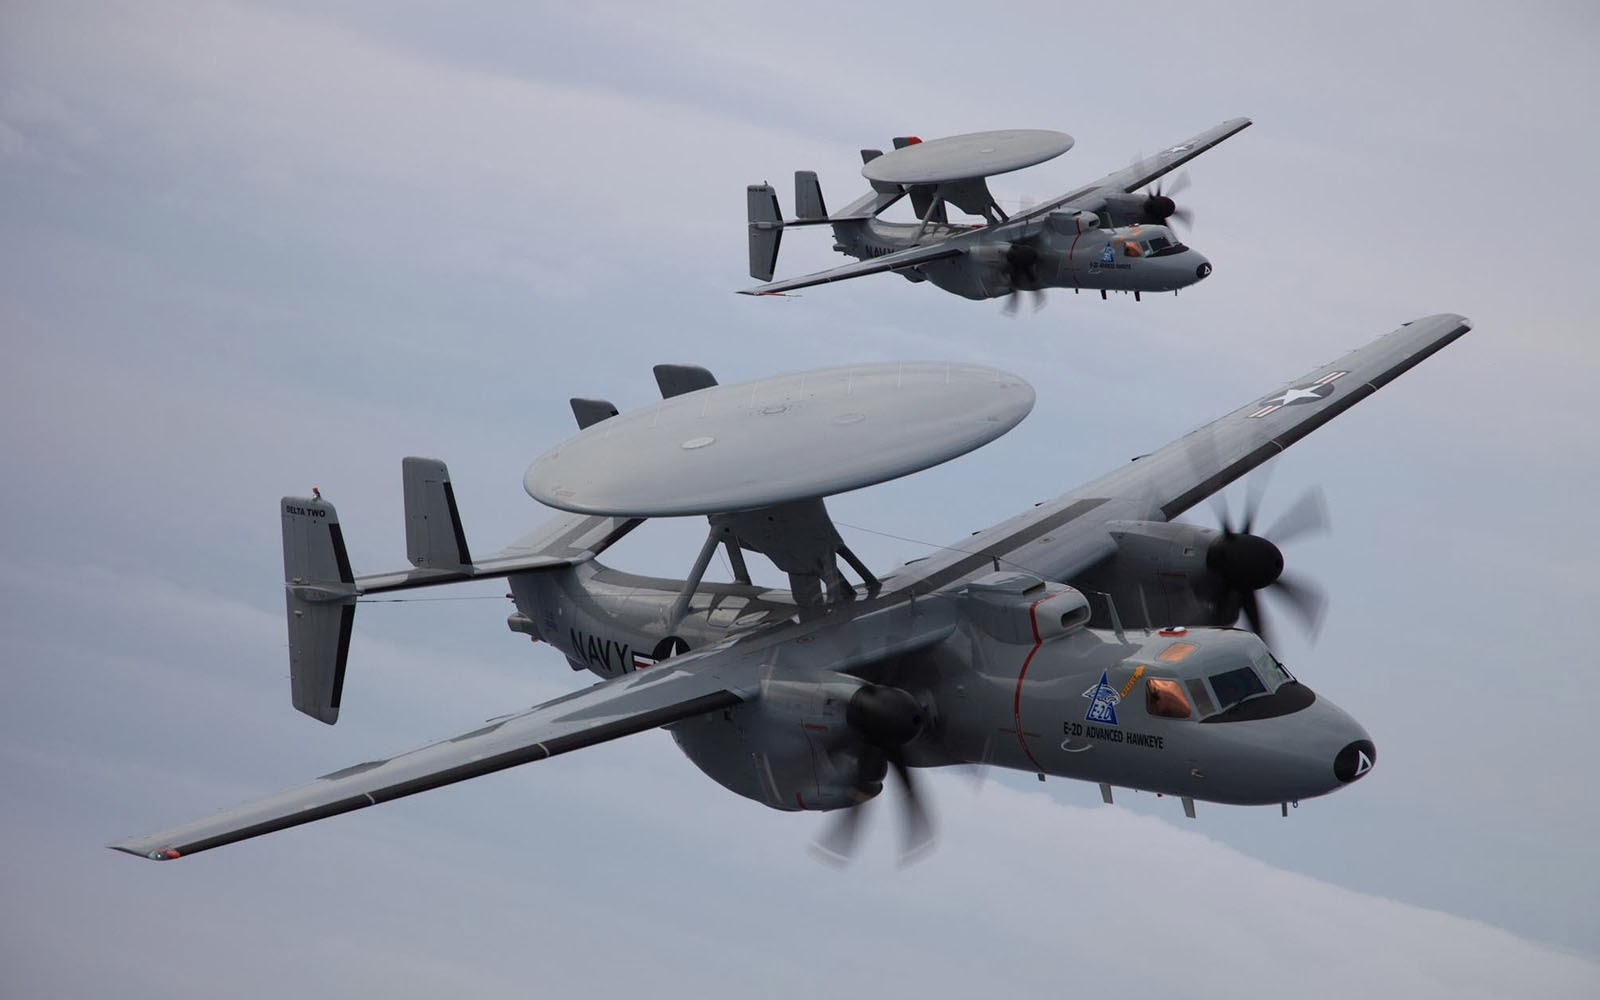 navy drone aircraft carrier with Grumman E 2c Hawkeye Wallpapers on Insitu Supply Scaneagle Surveillance Drones Afghanistan further Plane 19 as well 04 08 2017 furthermore T4068 Sous Marins D Attaque Classe Upholder furthermore 20140418 atd X Shinshin.